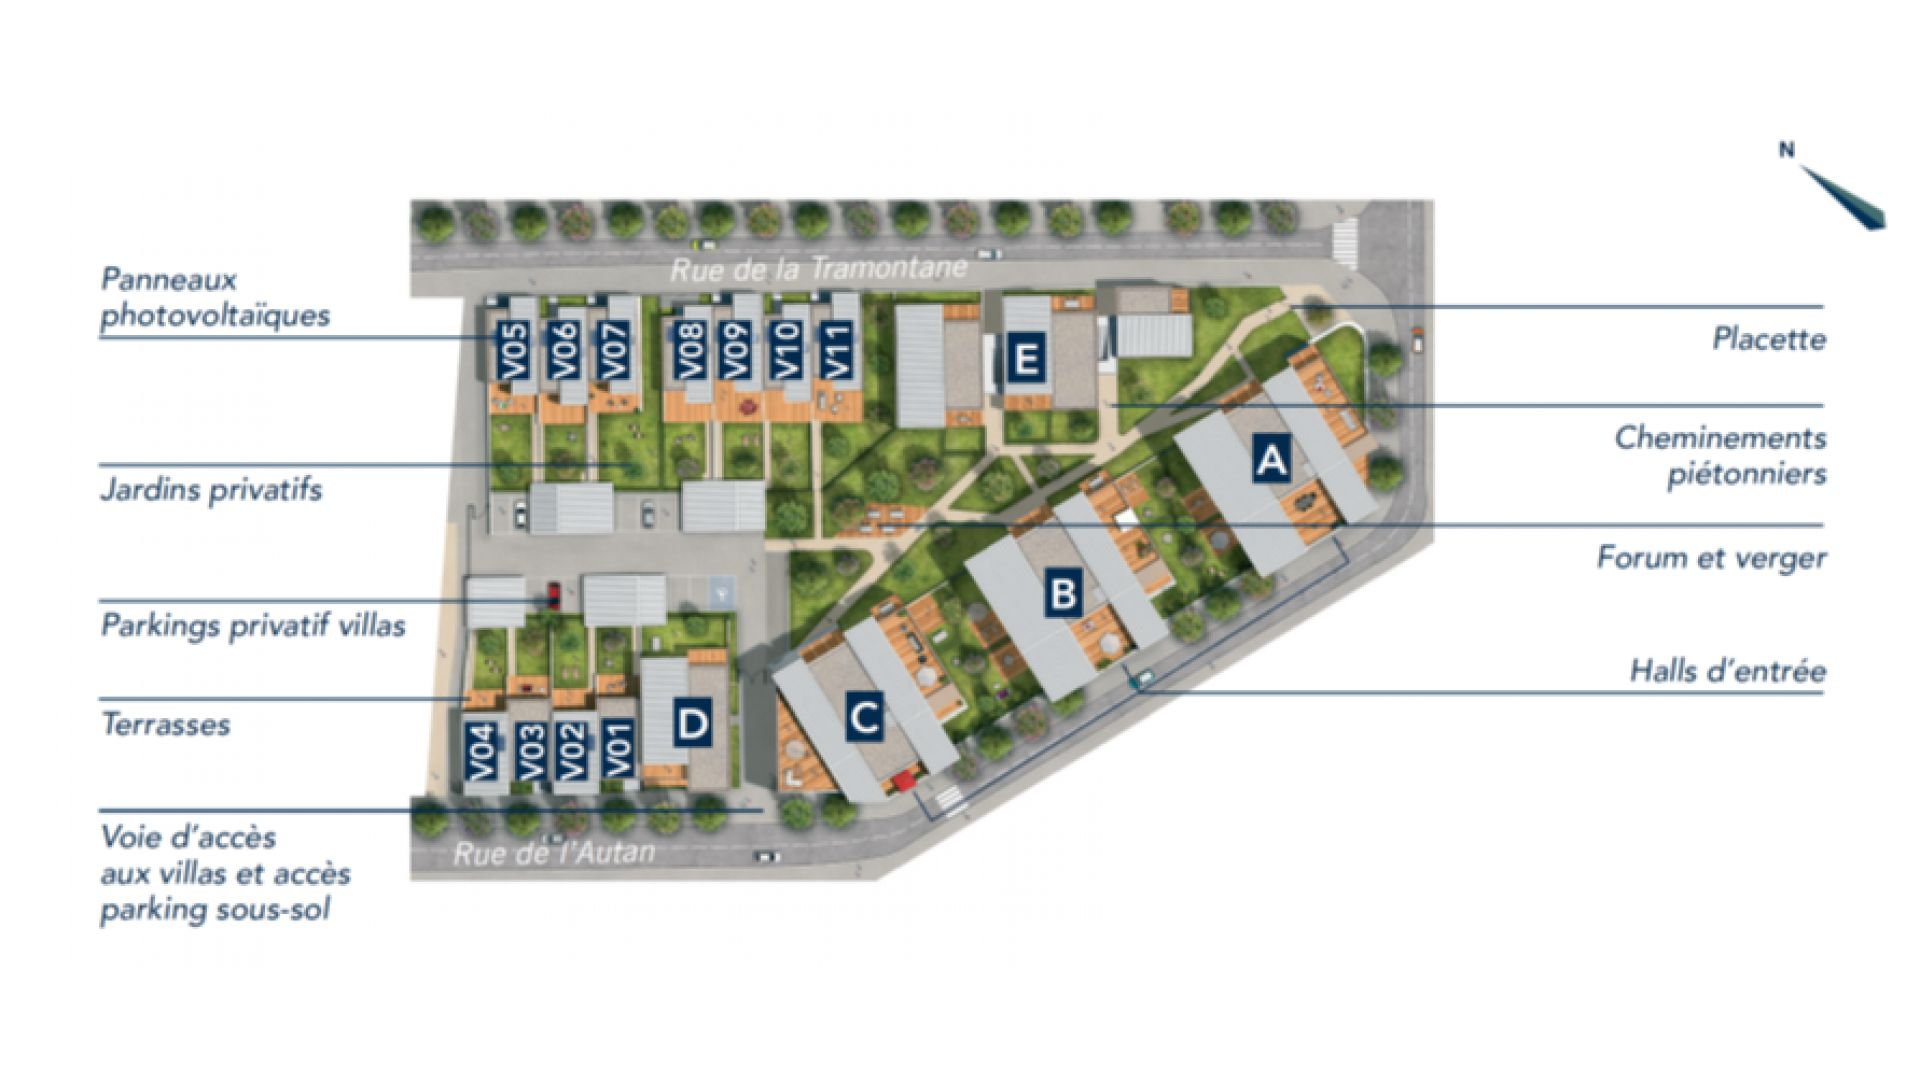 GreenCity immobilier - Blagnac-Beauzelle - 31700 - LB47 - appartements et villas - T2 - T3 - T4 -T5 - plan de masse